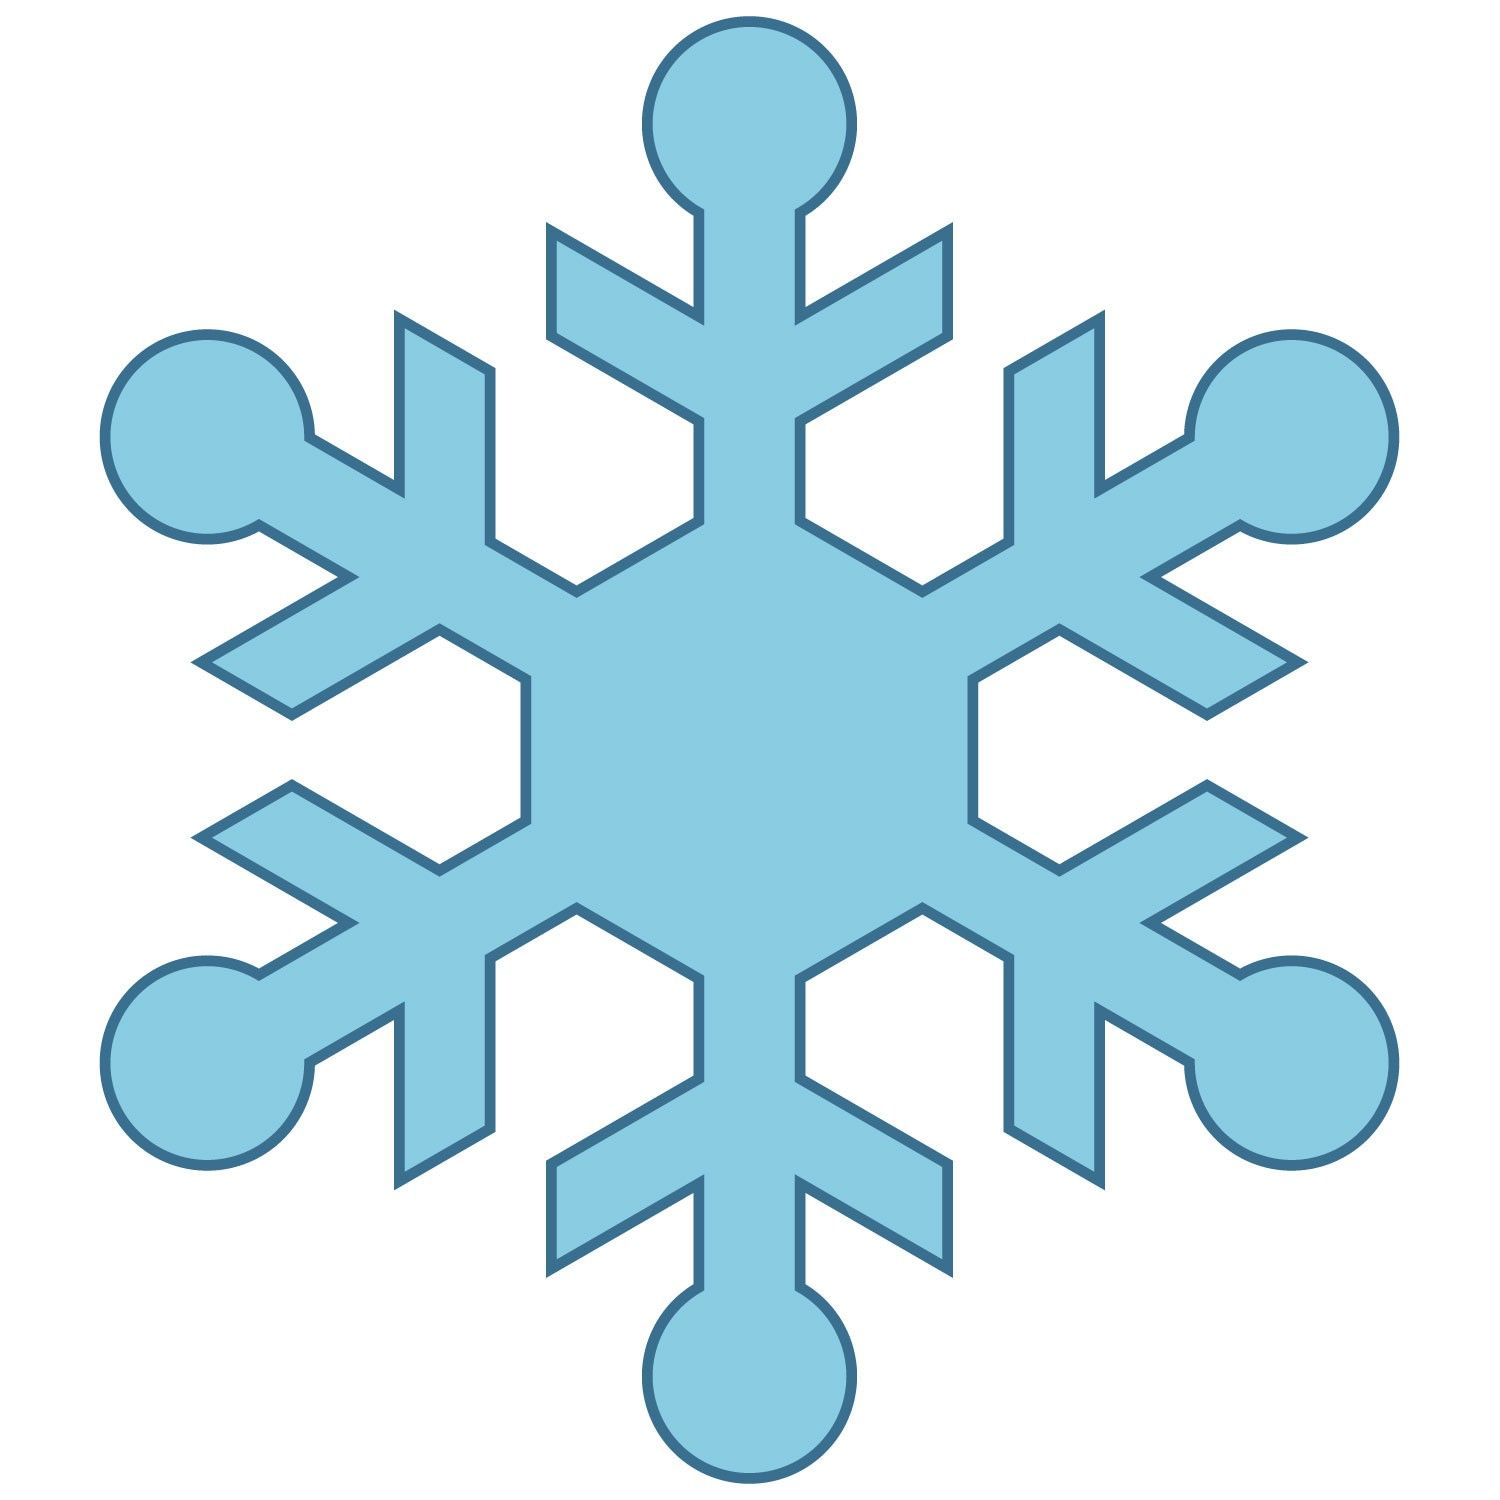 Simple Snowflakes Clipart Simple snowflakes clipart.